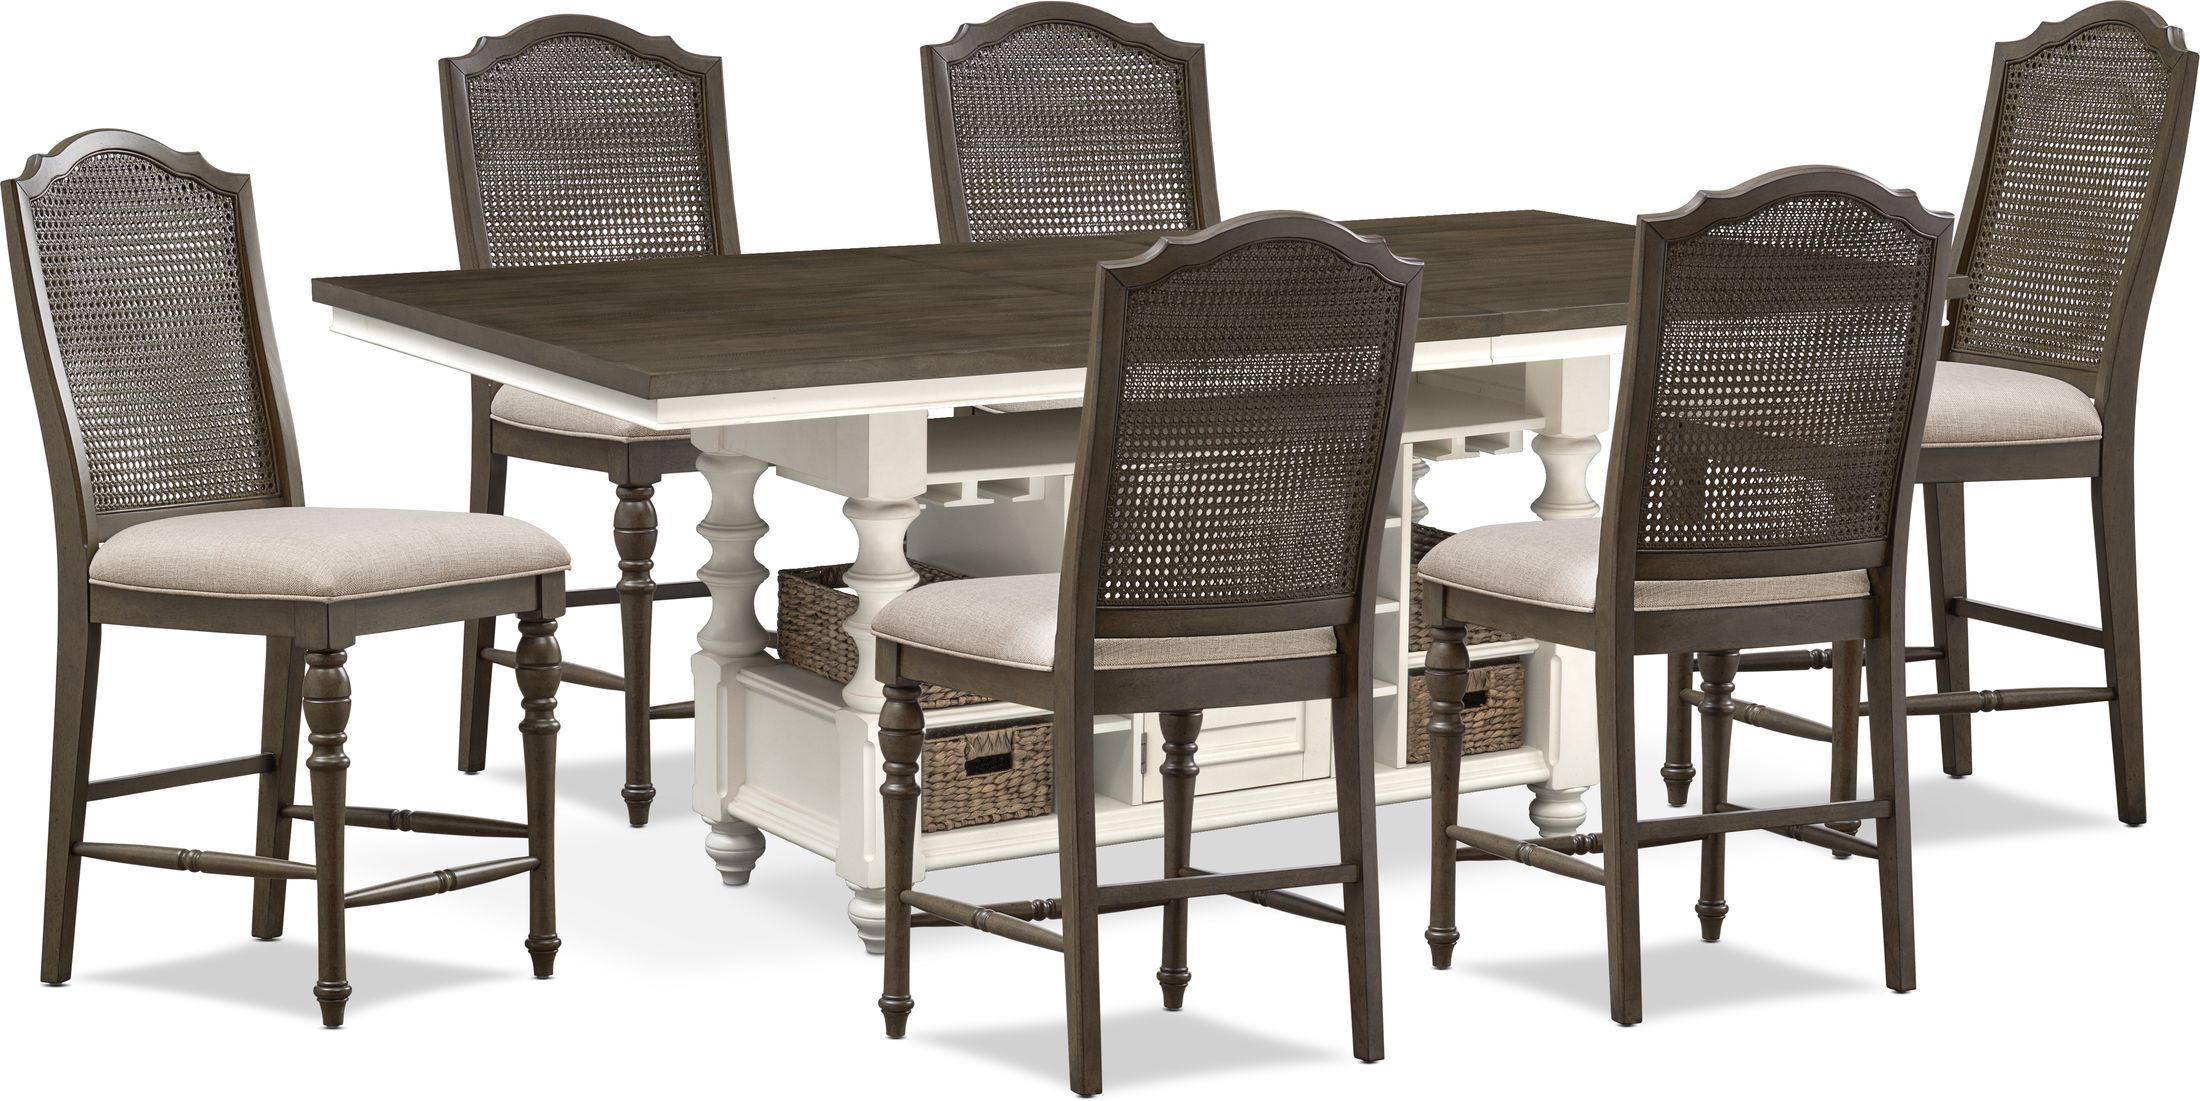 Dining Room Furniture - Charleston Counter-Height Dining Table and 6 Cane Back Stools